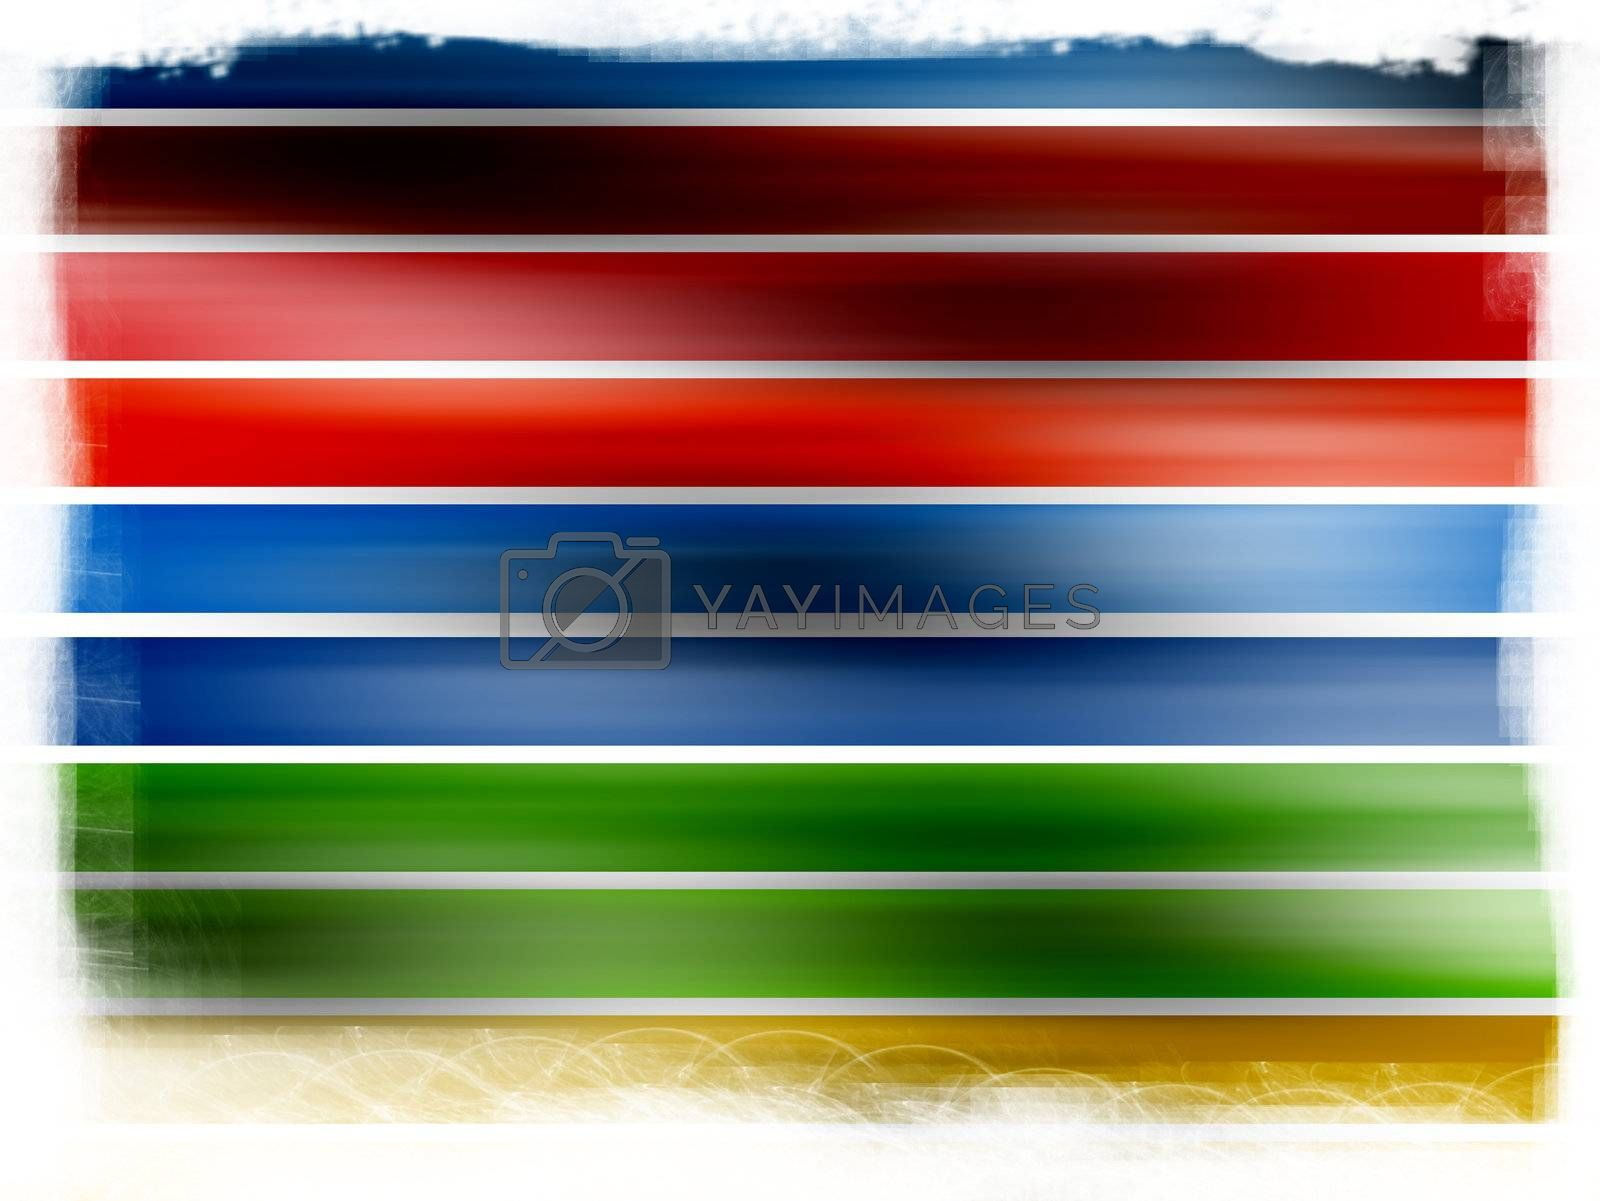 lines on red, blue, yellow and green colors, dynamic effect